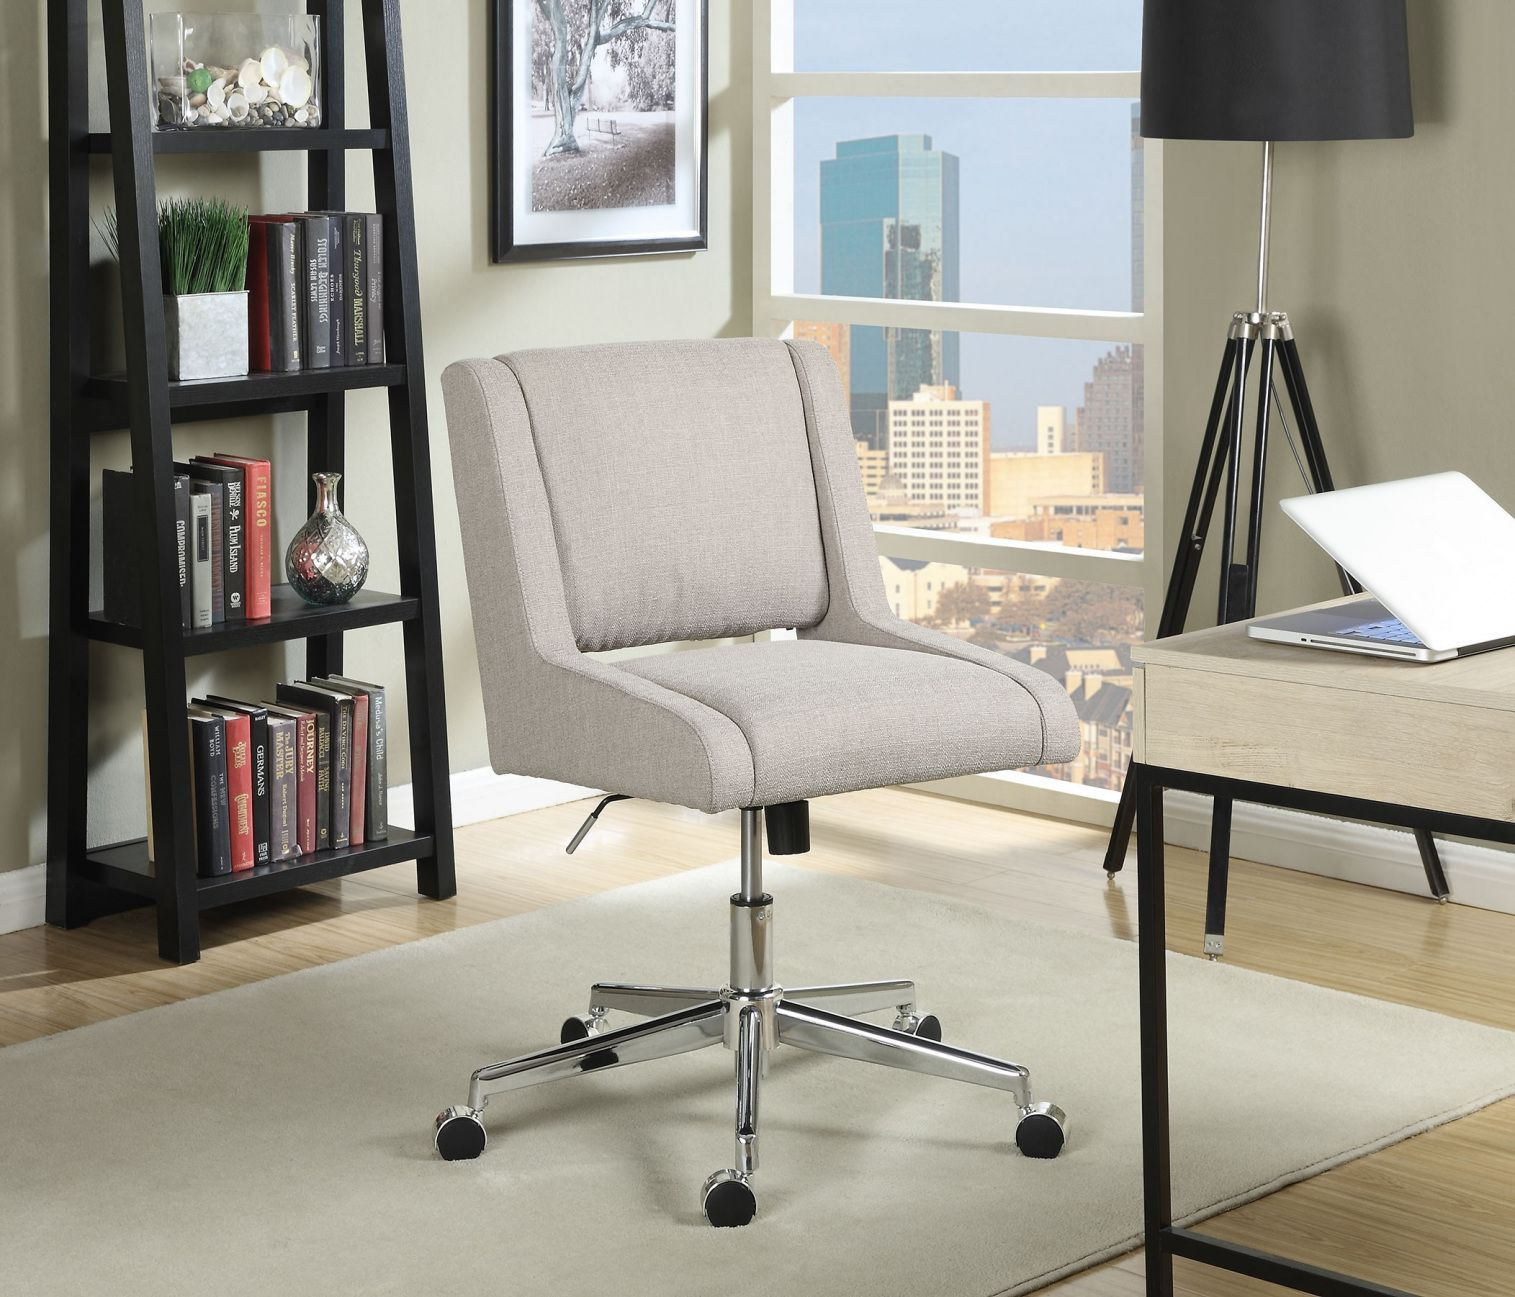 Broyhill Office Chairs Furniture For Home Check More At Http Www